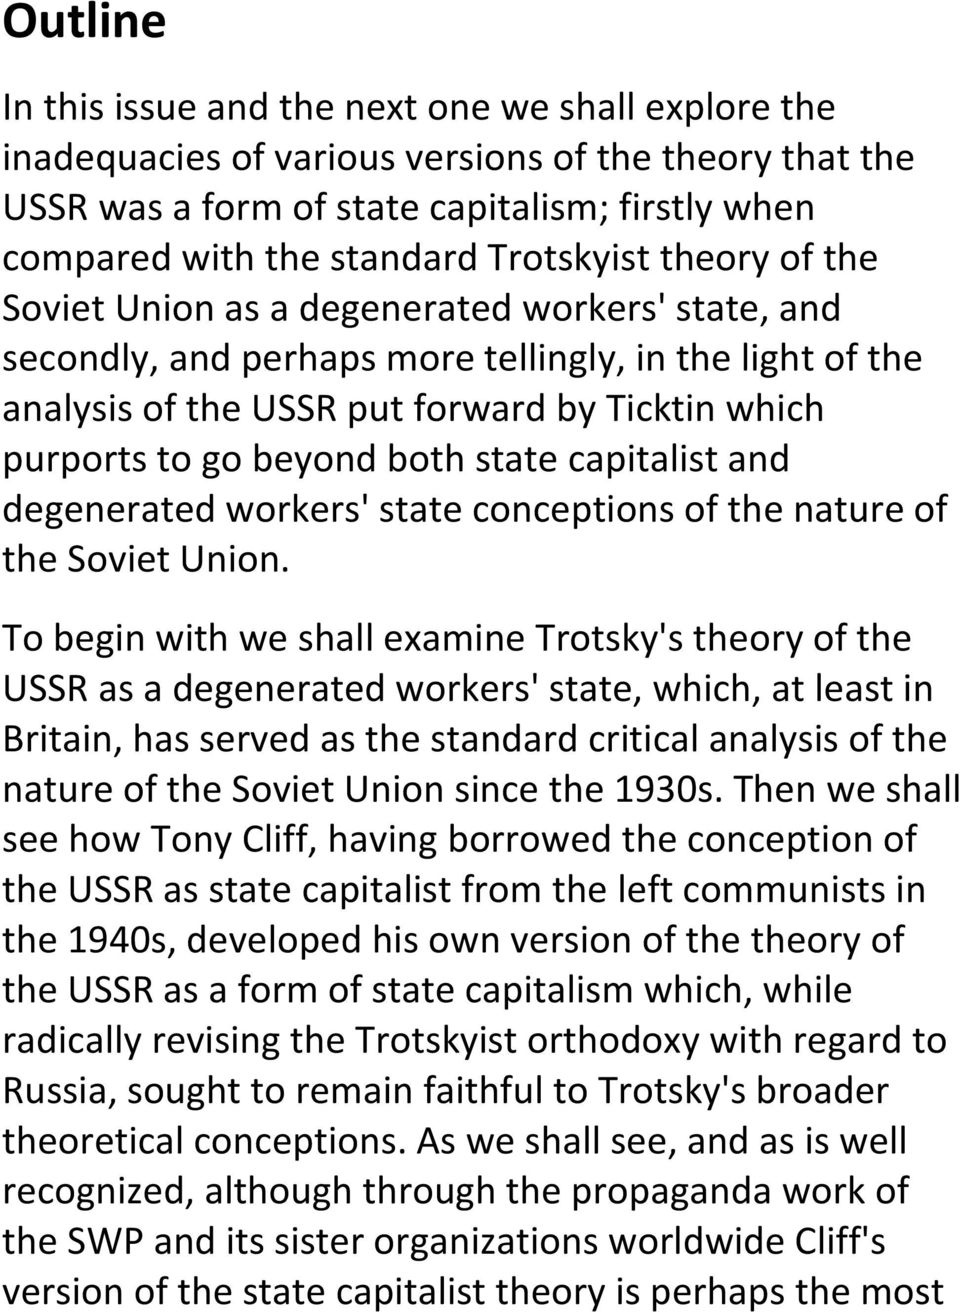 beyond both state capitalist and degenerated workers' state conceptions of the nature of the Soviet Union.